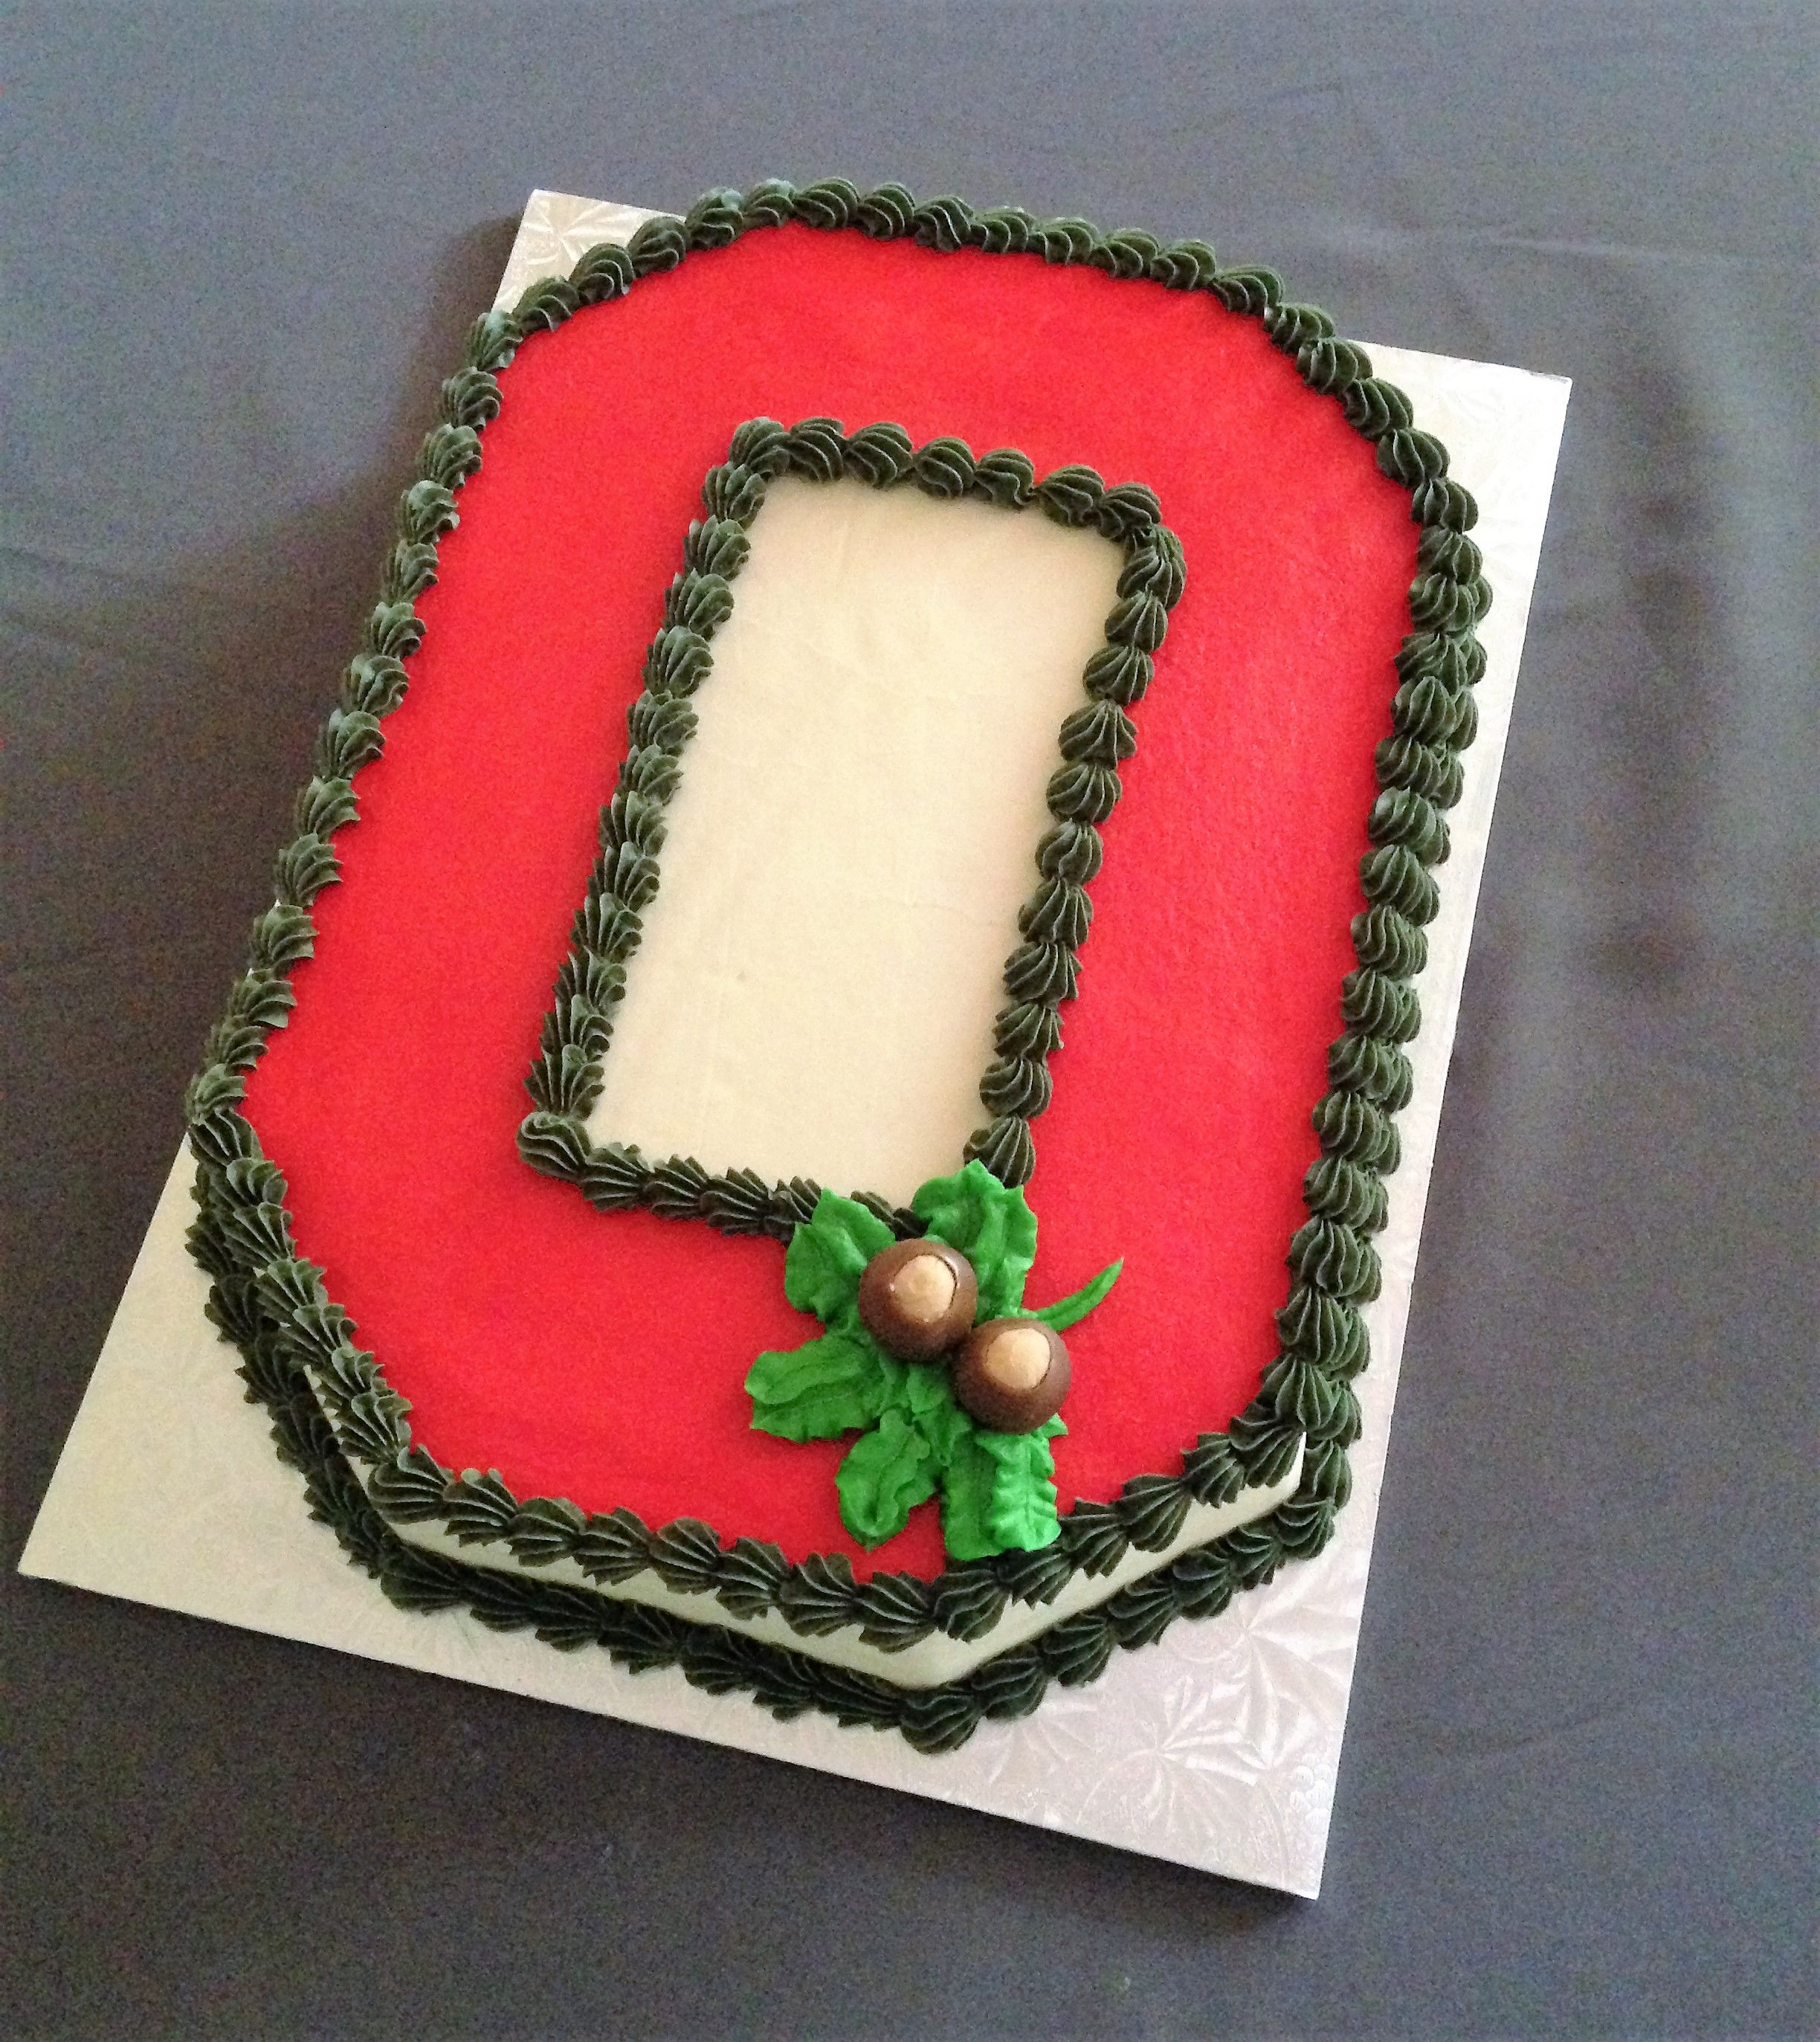 Ohio State Cake Decorated With Buttercream Icing And 2 Befitting